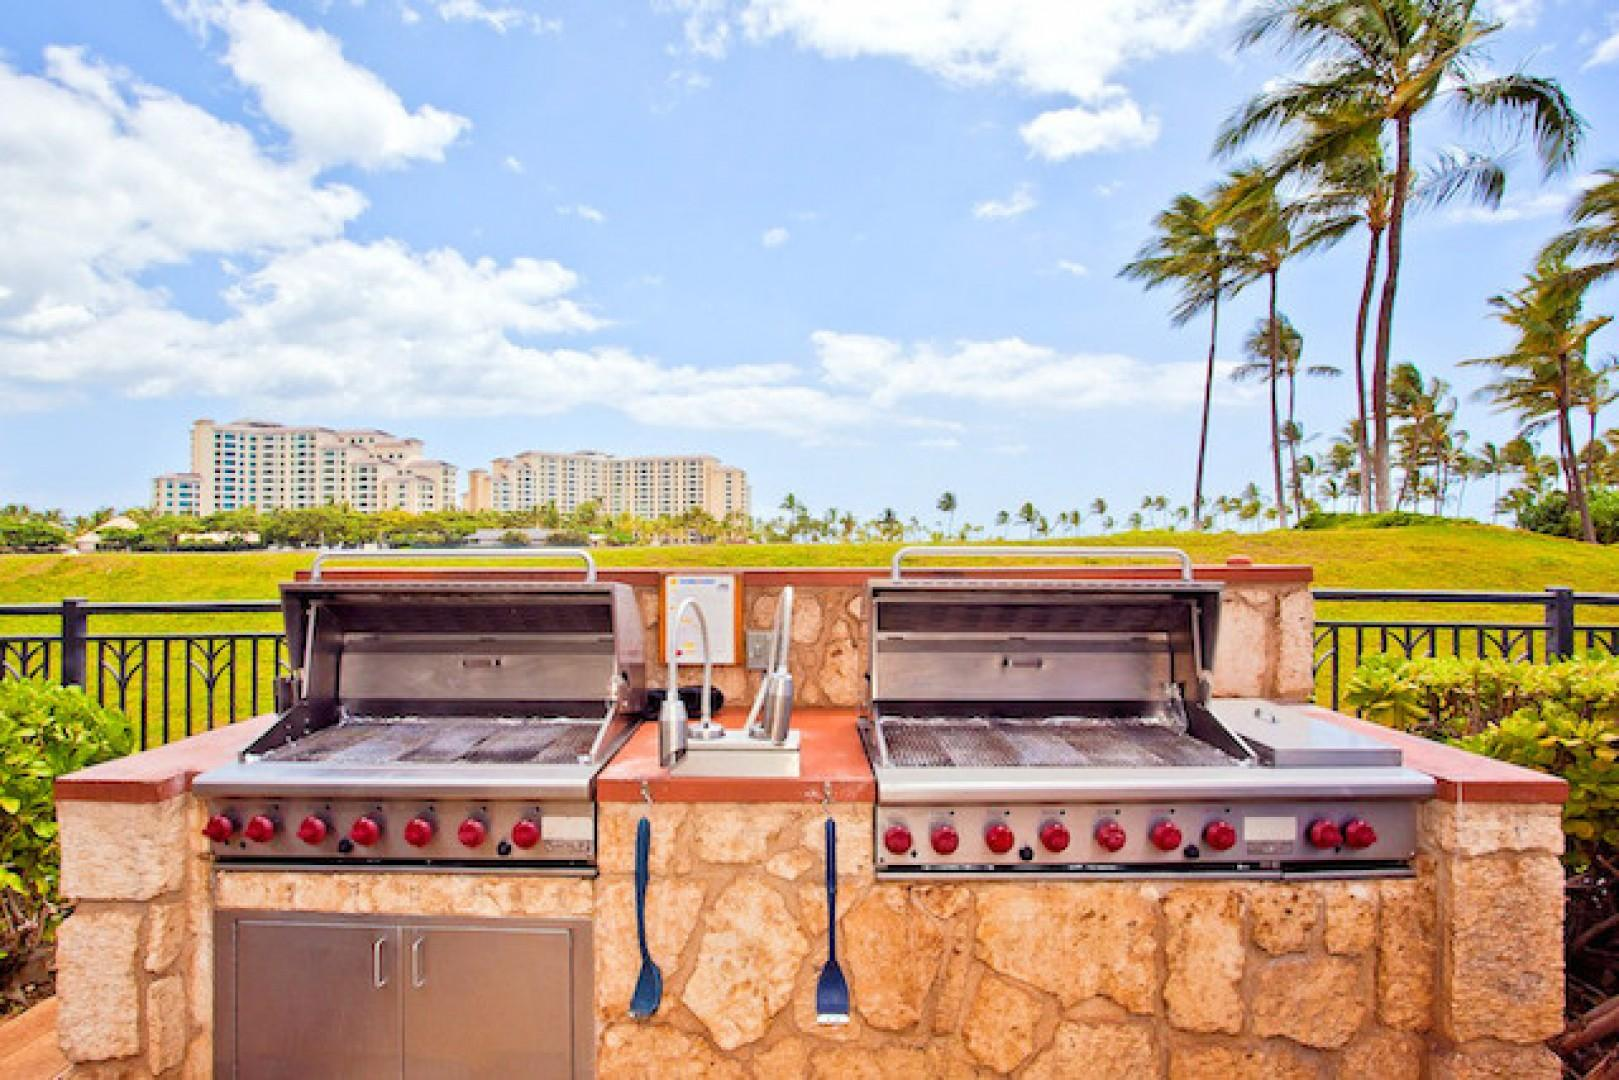 Grills by the pool are first come first serve